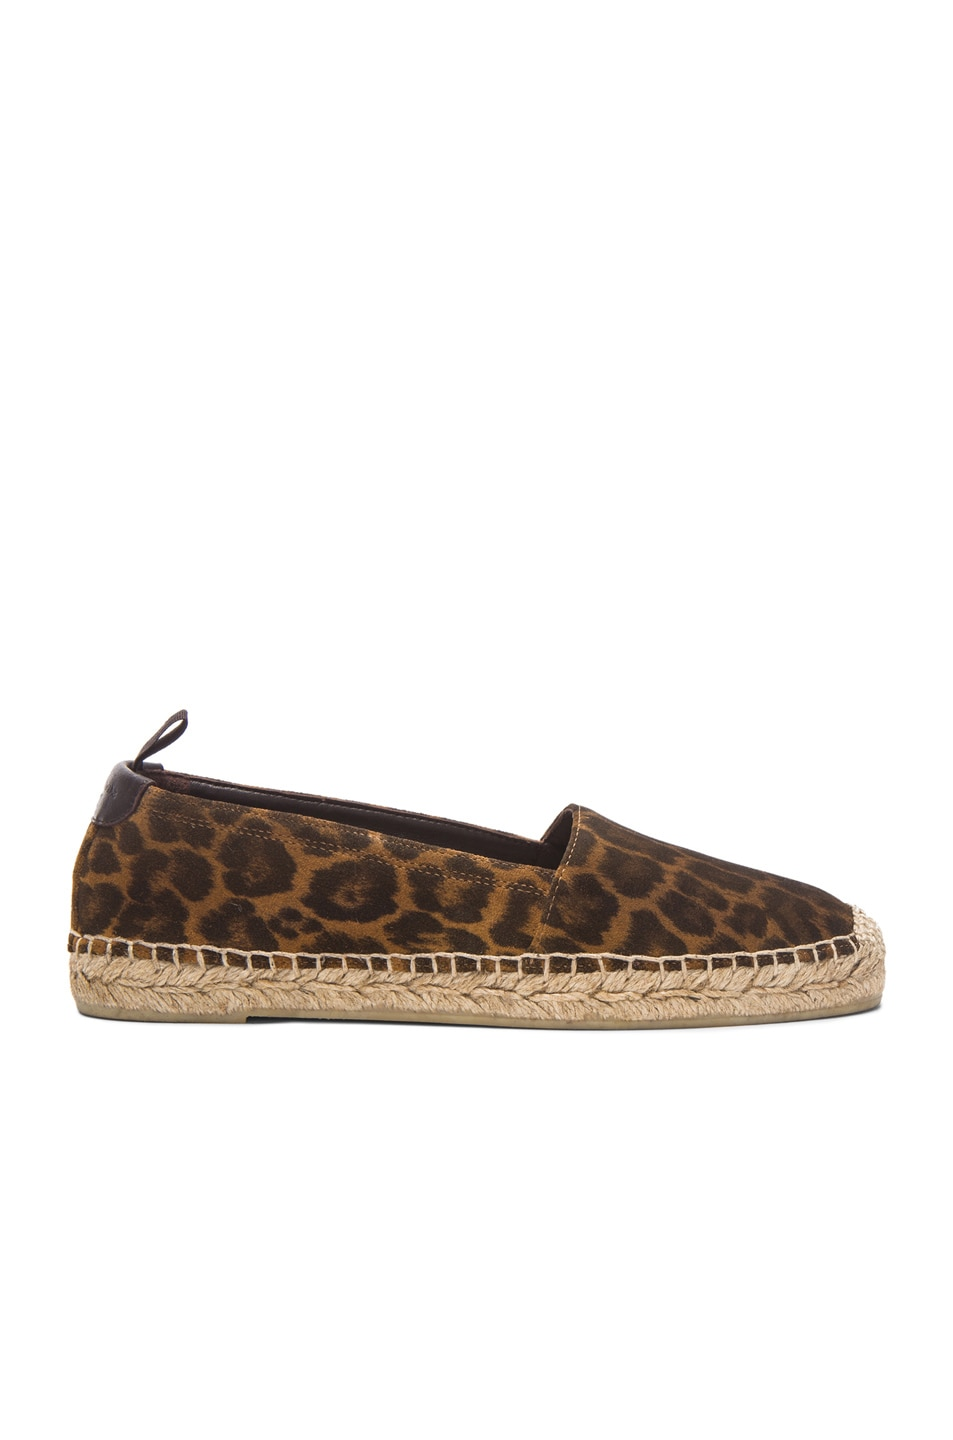 Image 1 of Saint Laurent Suede Leopard Espadrilles in Tan